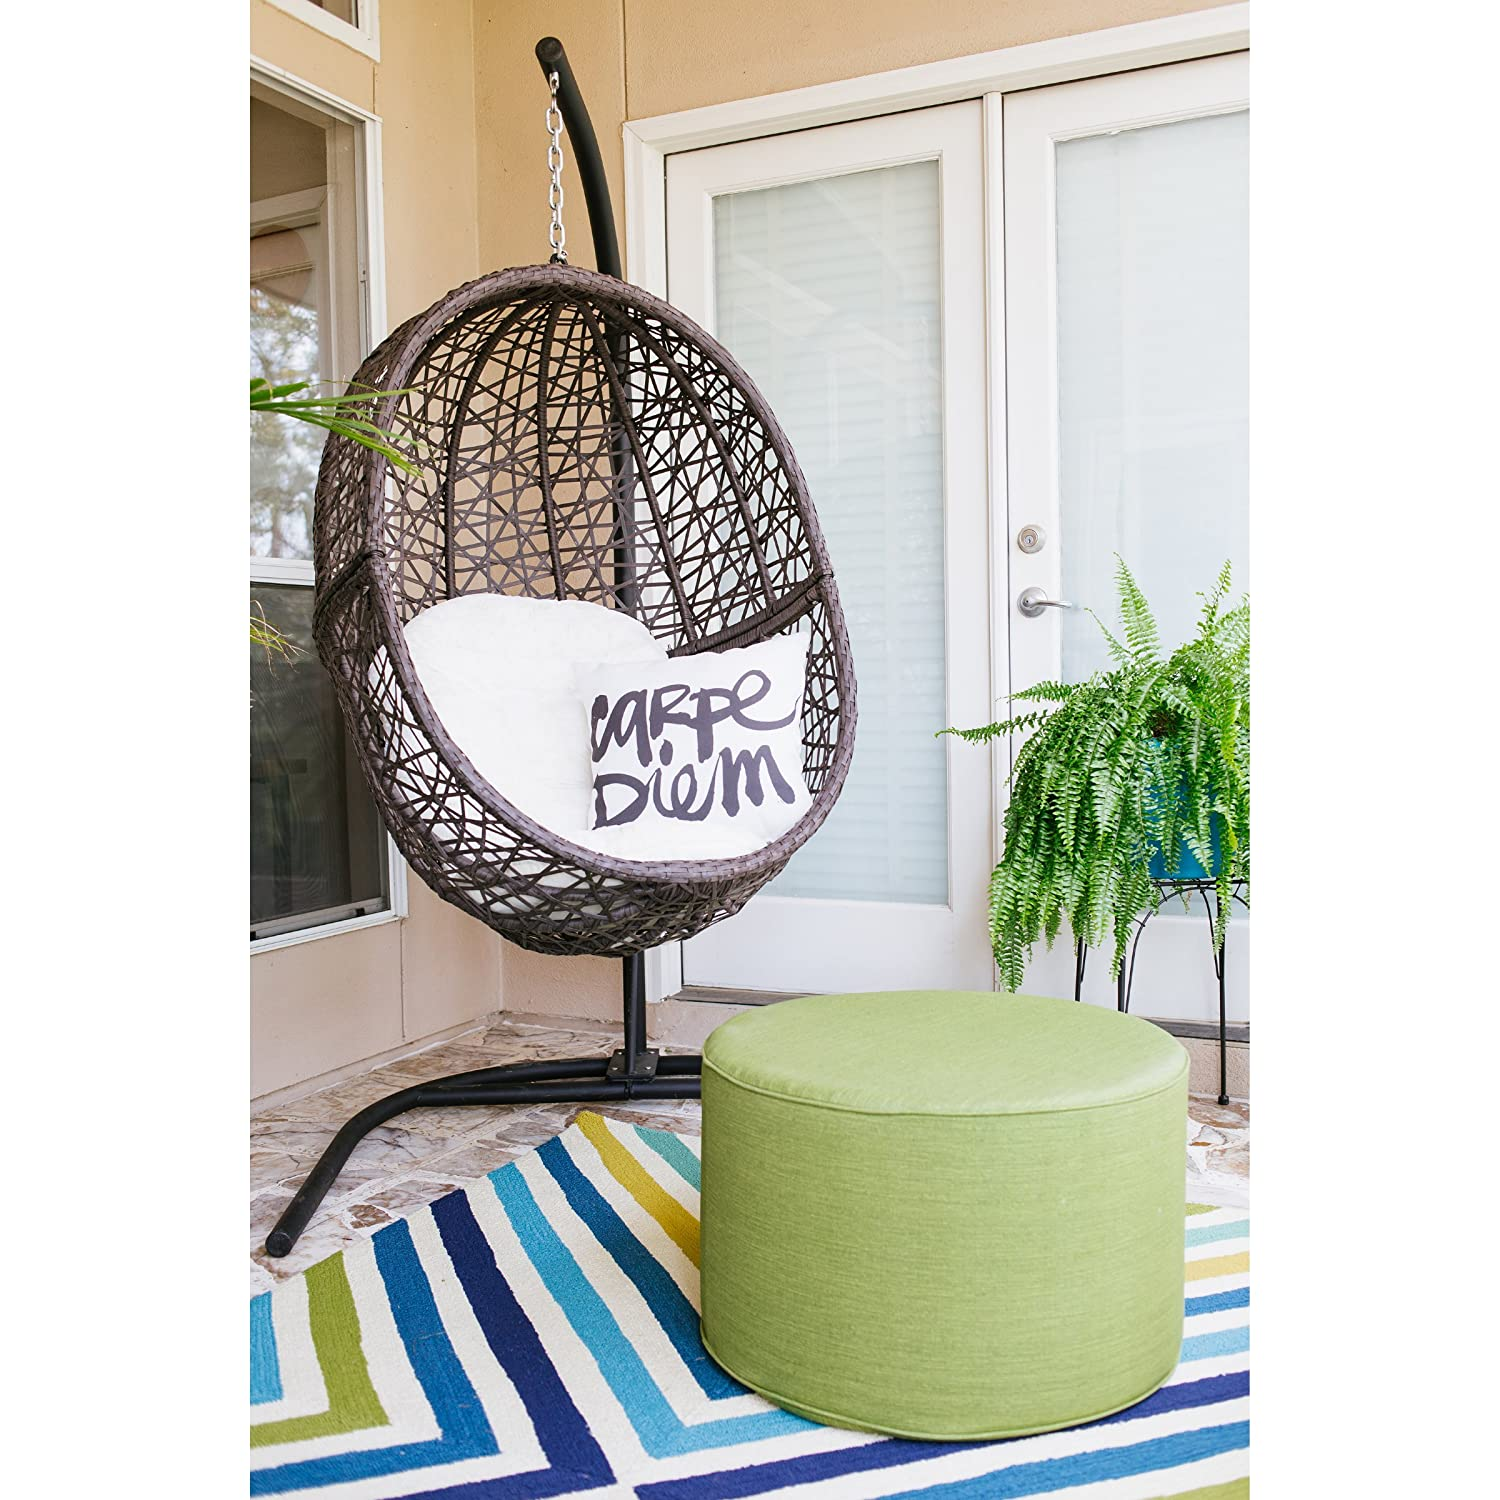 Wicker egg chair - Amazon Com Resin Wicker Espresso Hanging Egg Chair With Tufted Khaki Cushion And Stand Patio Lawn Garden